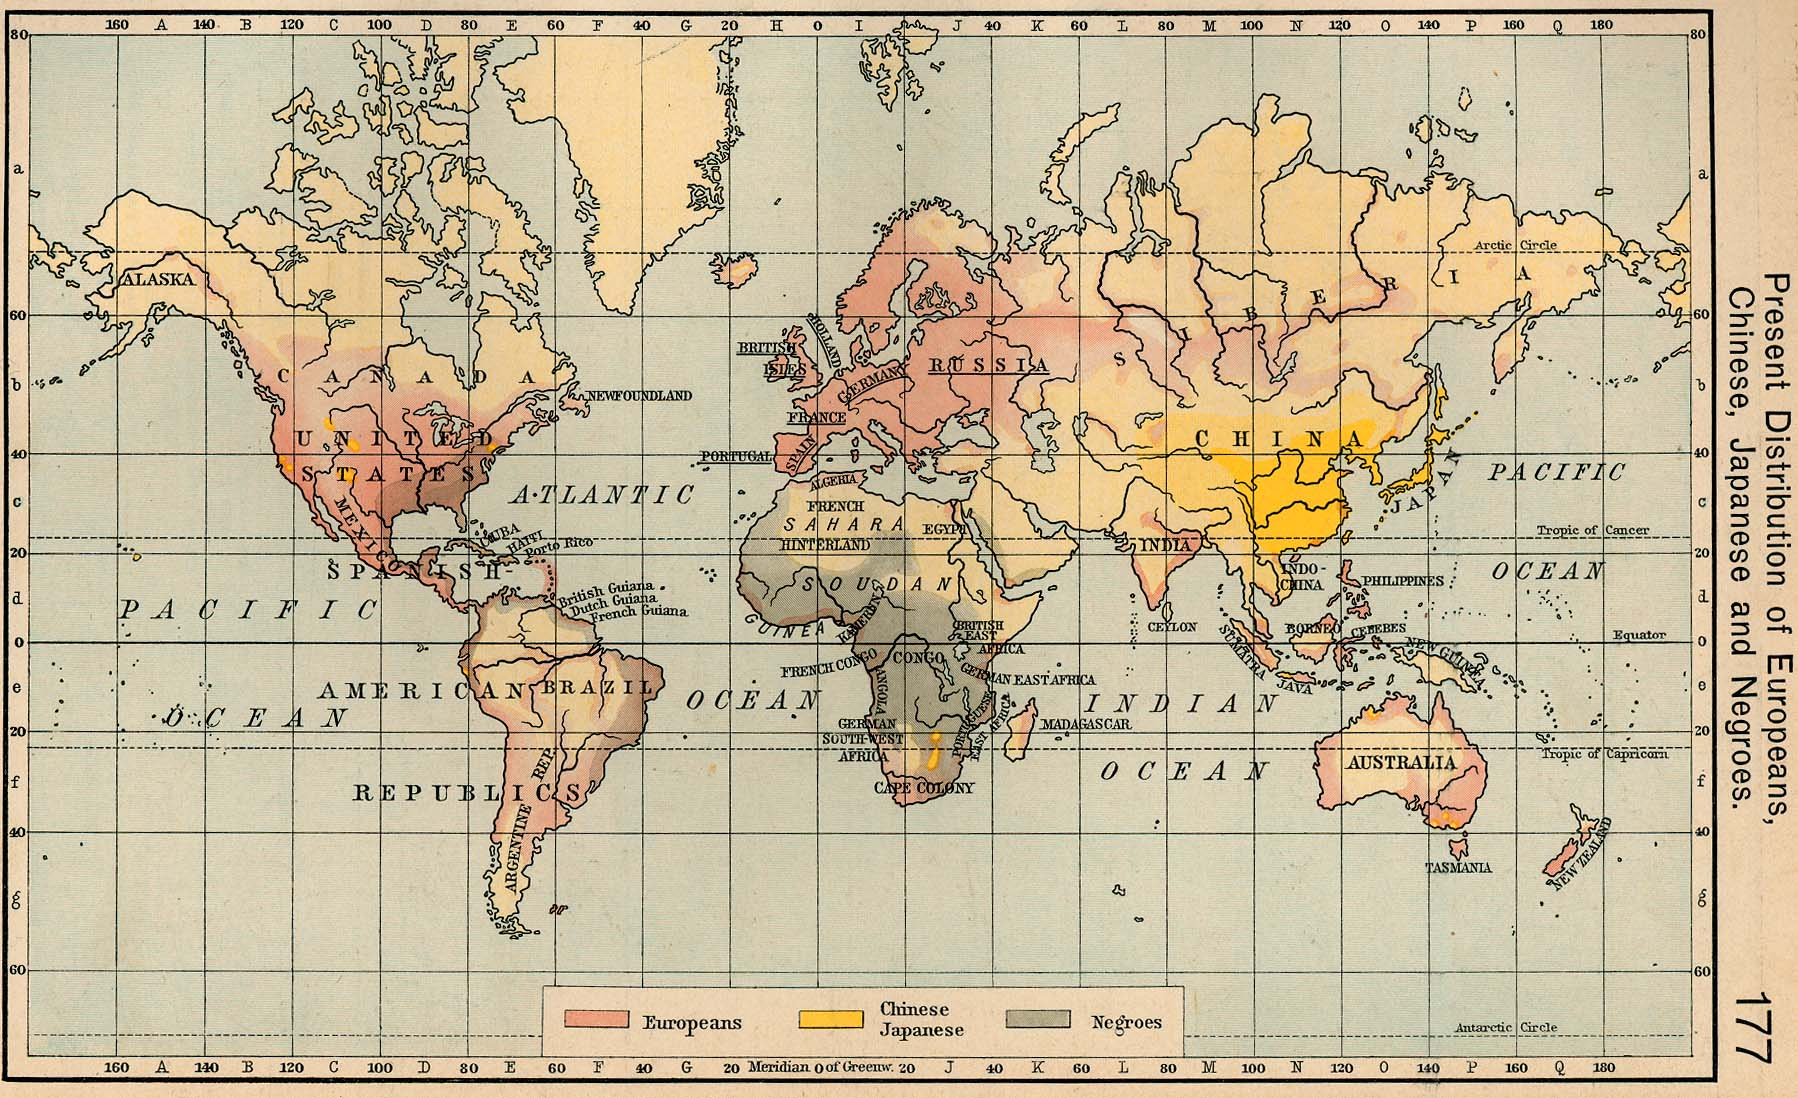 World historical maps perry castaeda map collection ut library present distribution of europeans chinese japanese and negroes 1911 gumiabroncs Choice Image